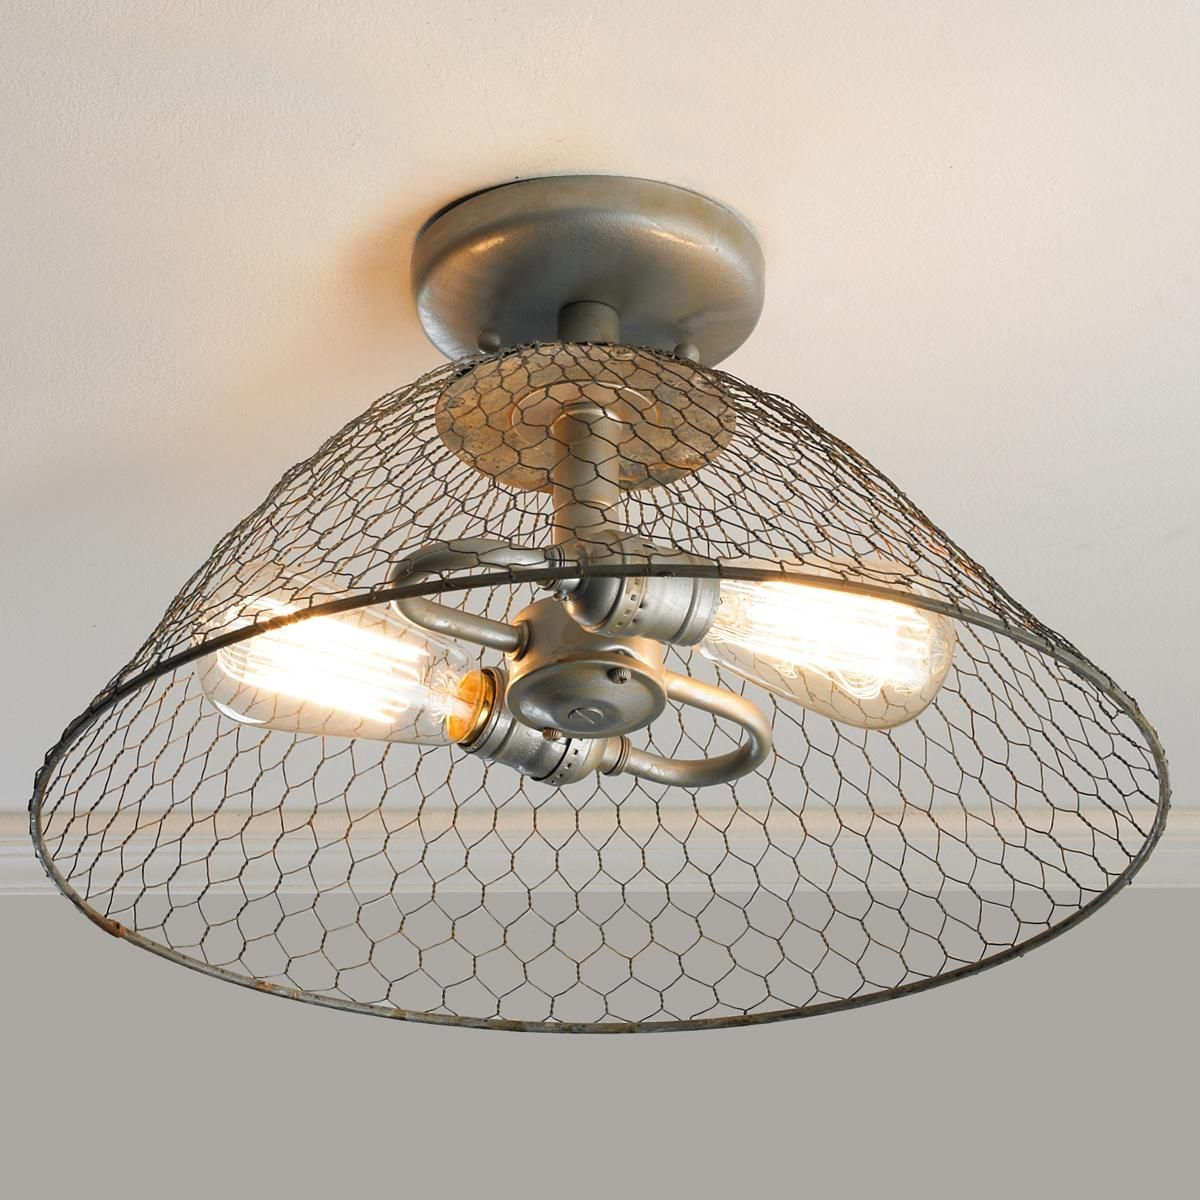 Rustic Chicken Wire Dome Ceiling Light It's All In The